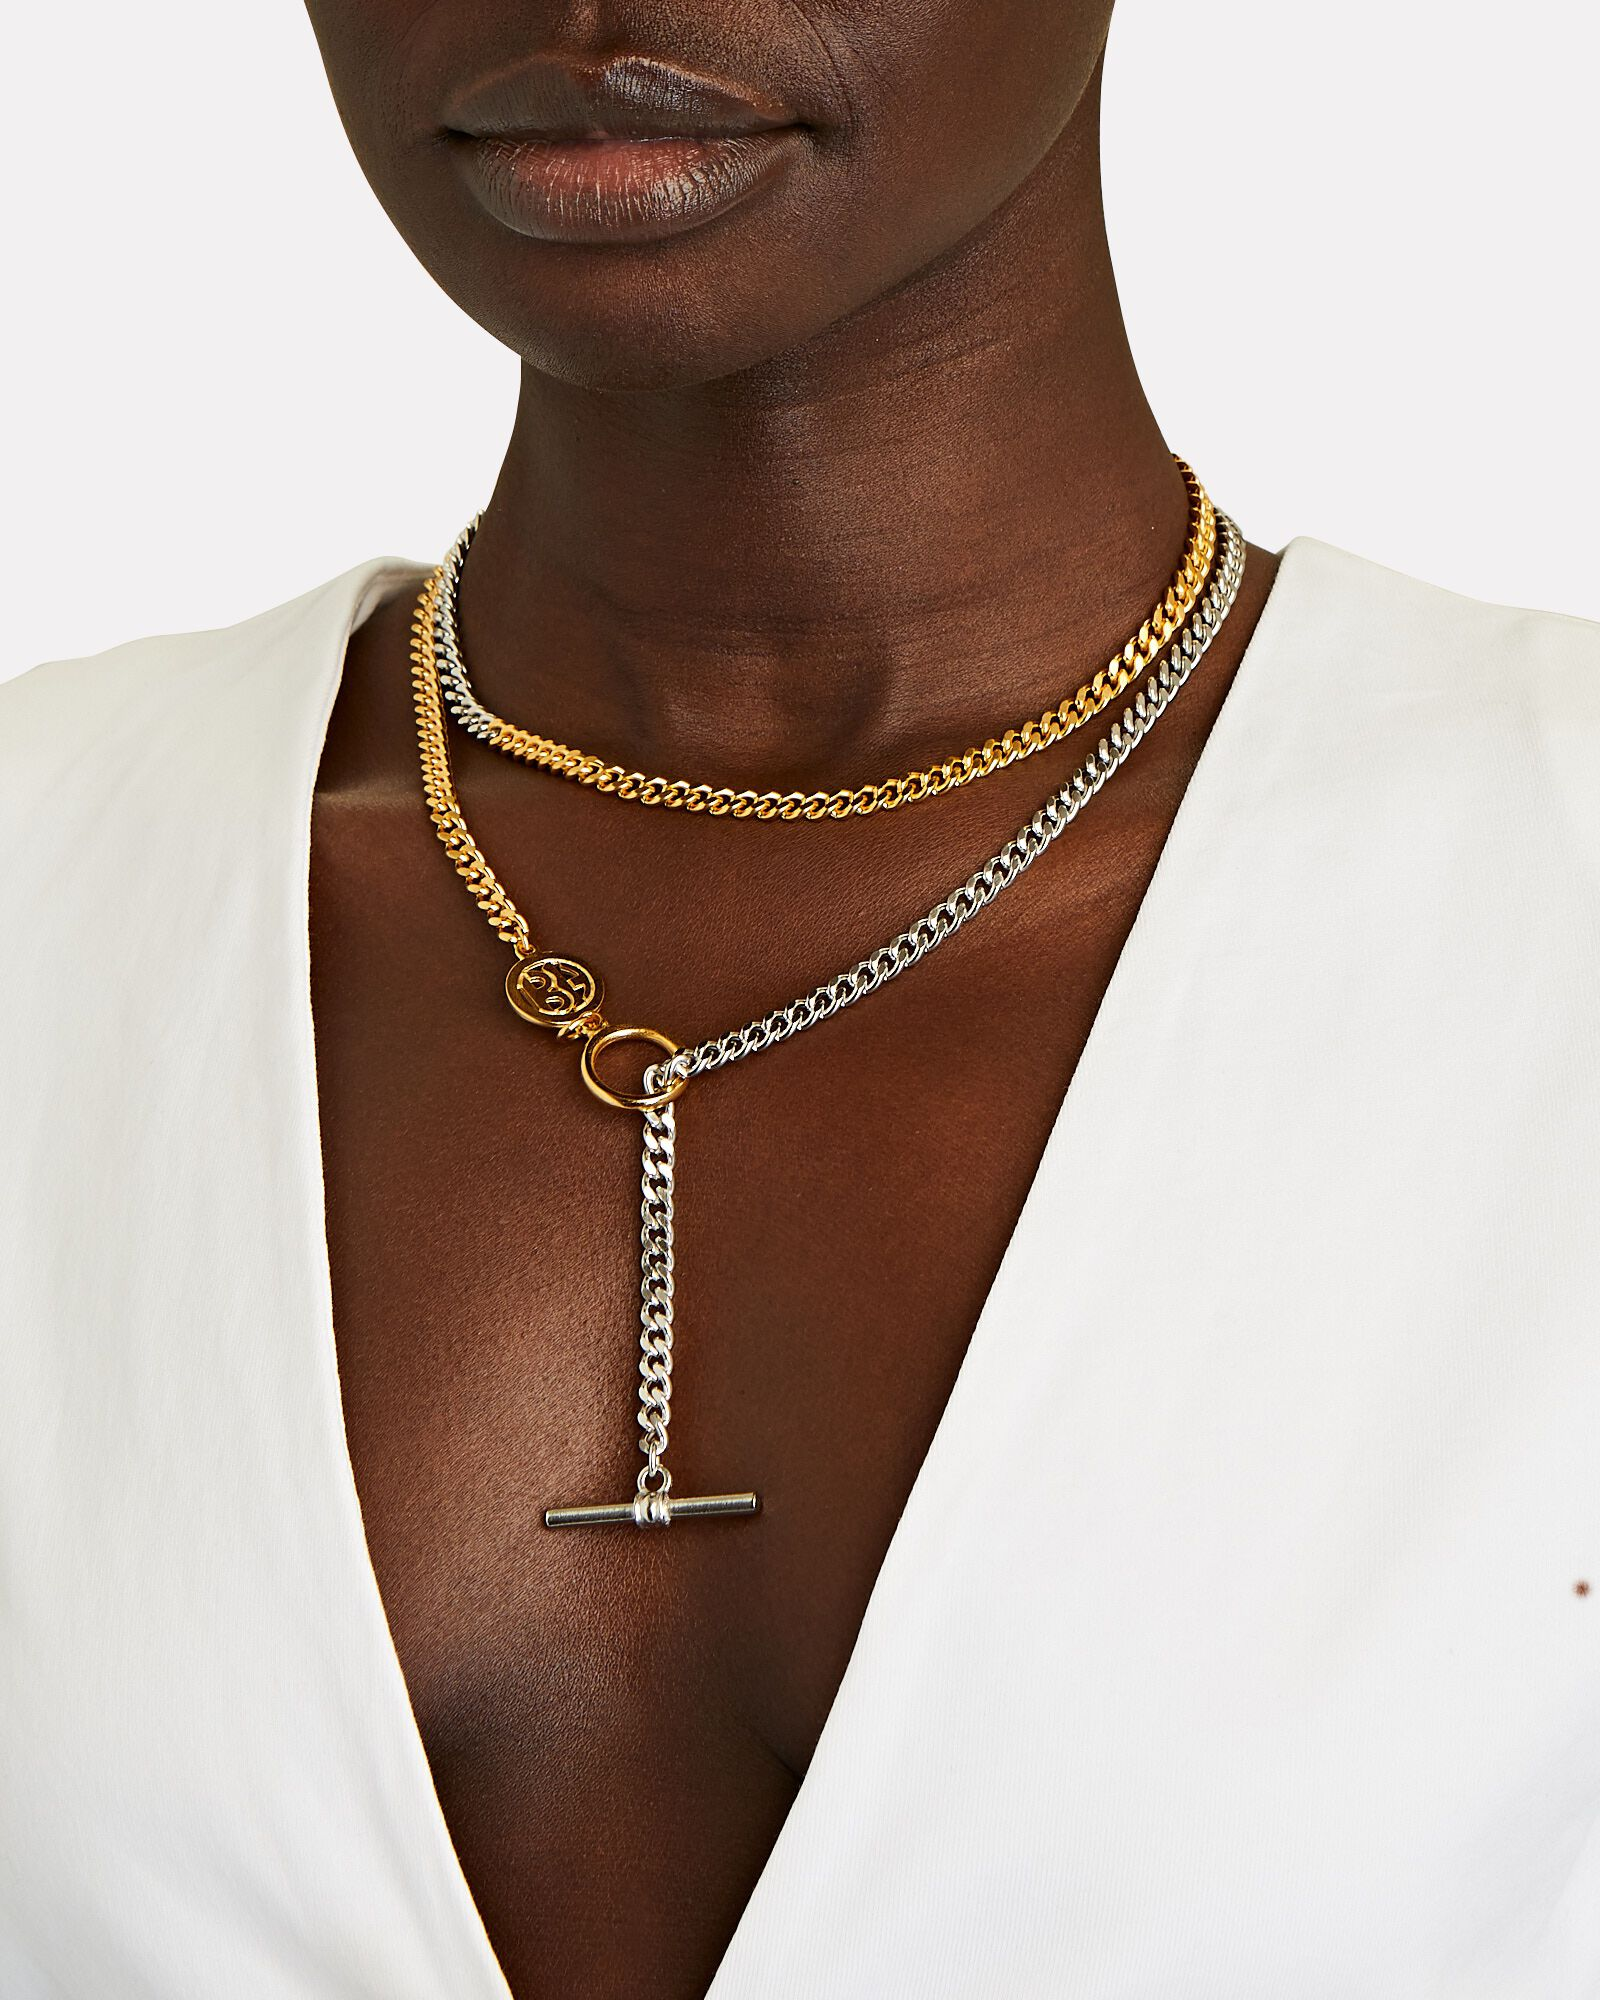 Mixed Metal English Chain Necklace, SILVER/GOLD, hi-res